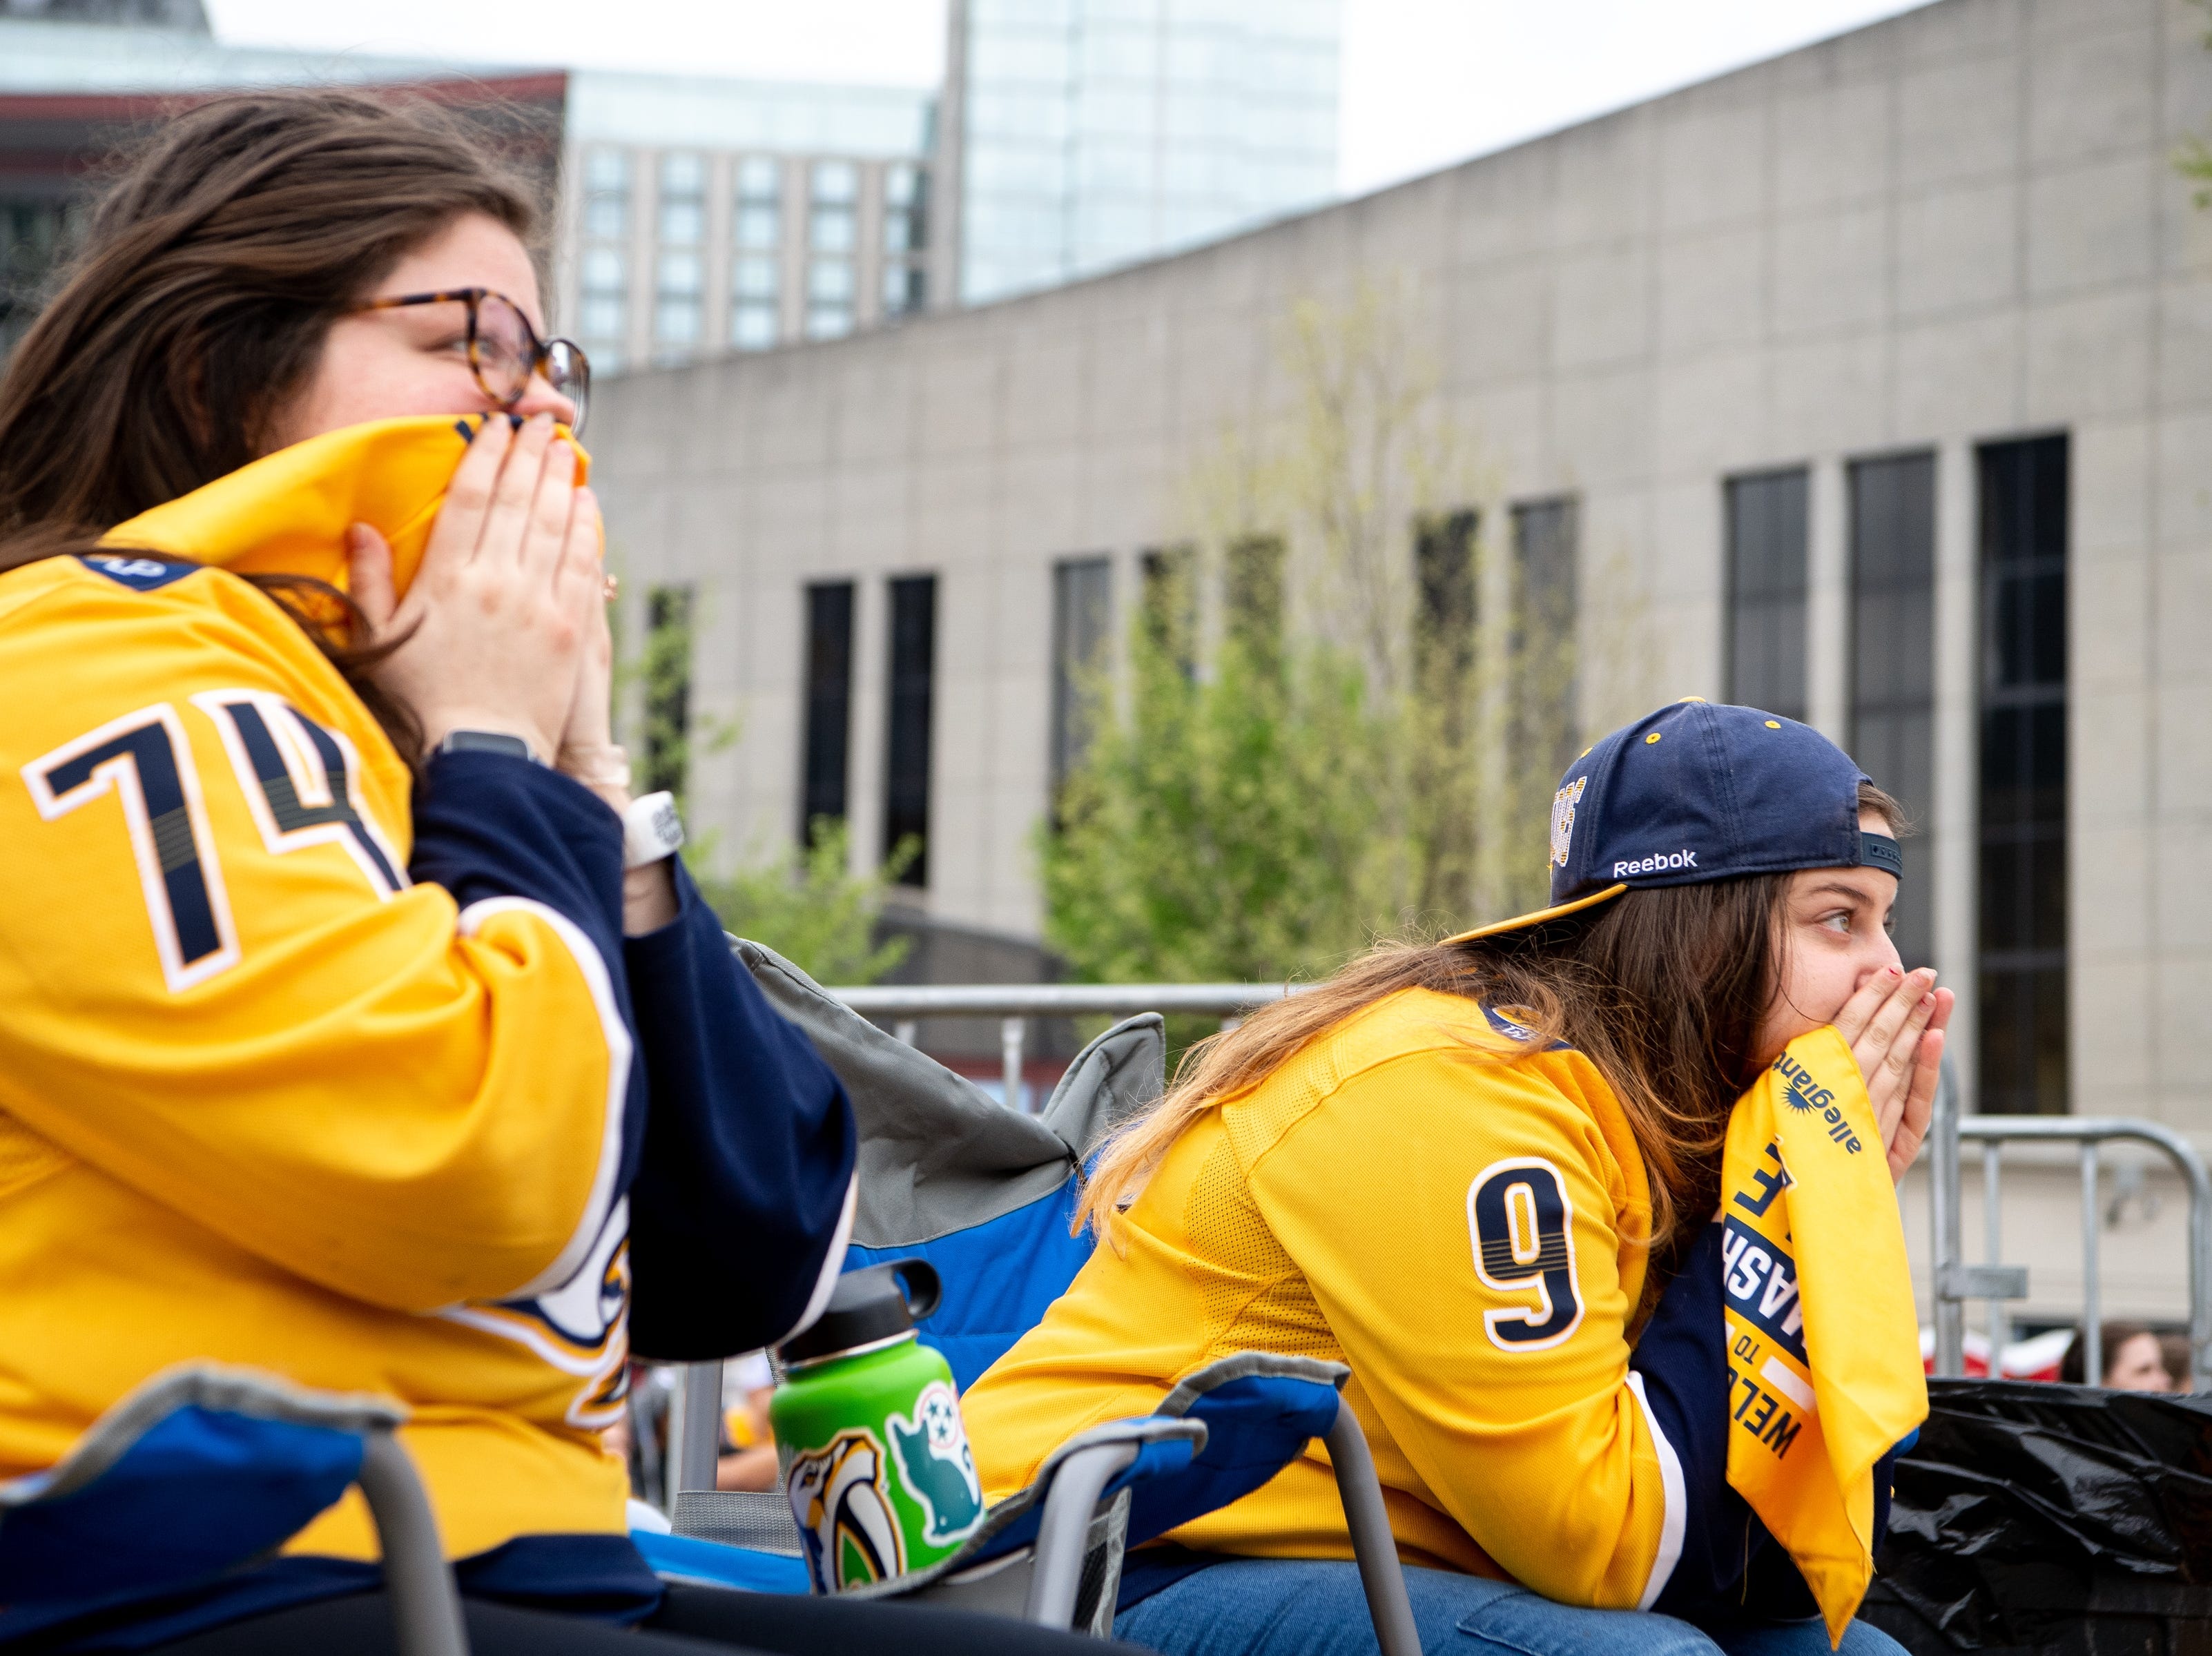 Sisters Kelly and Sophia Campbell watch the first period of the Nashville Predators game against the Dallas Stars at Preds Party in the Park at Walk of Fame Park Saturday, April 13, 2019, in Nashville, Tenn.